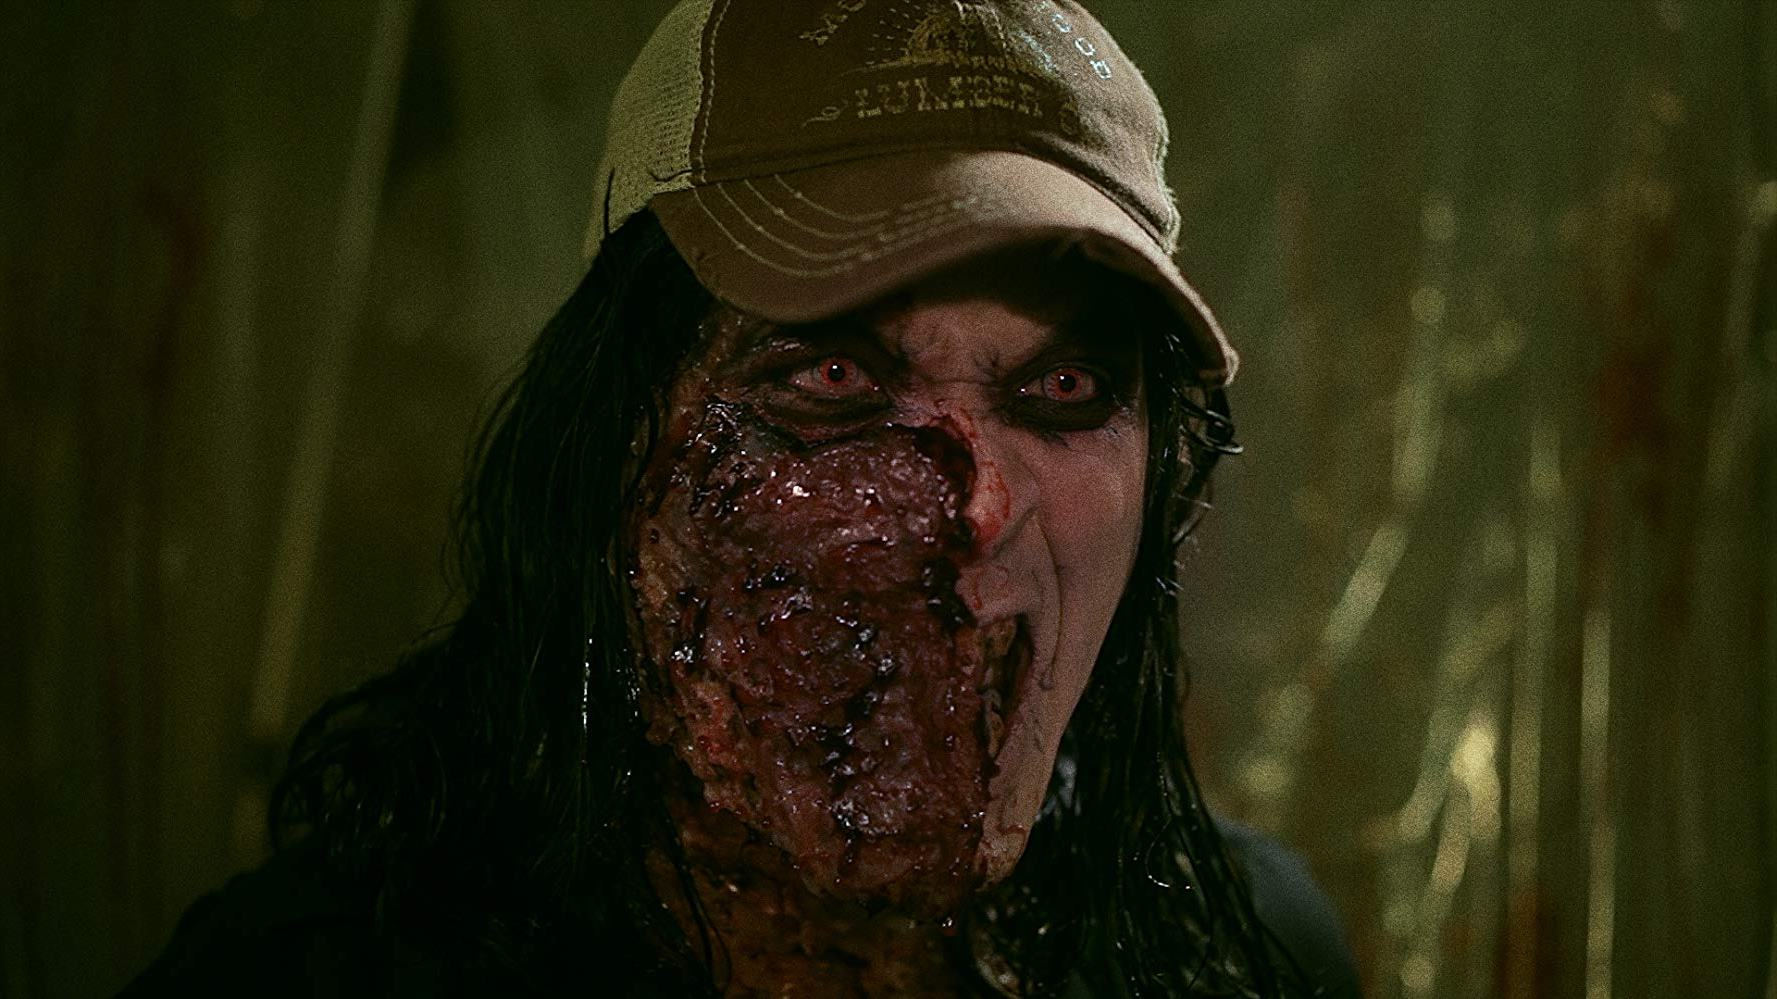 Morgue janitor Wayne W. Johnson becomes a zombie after having sex with a corpse in Night of Something Strange (2016)